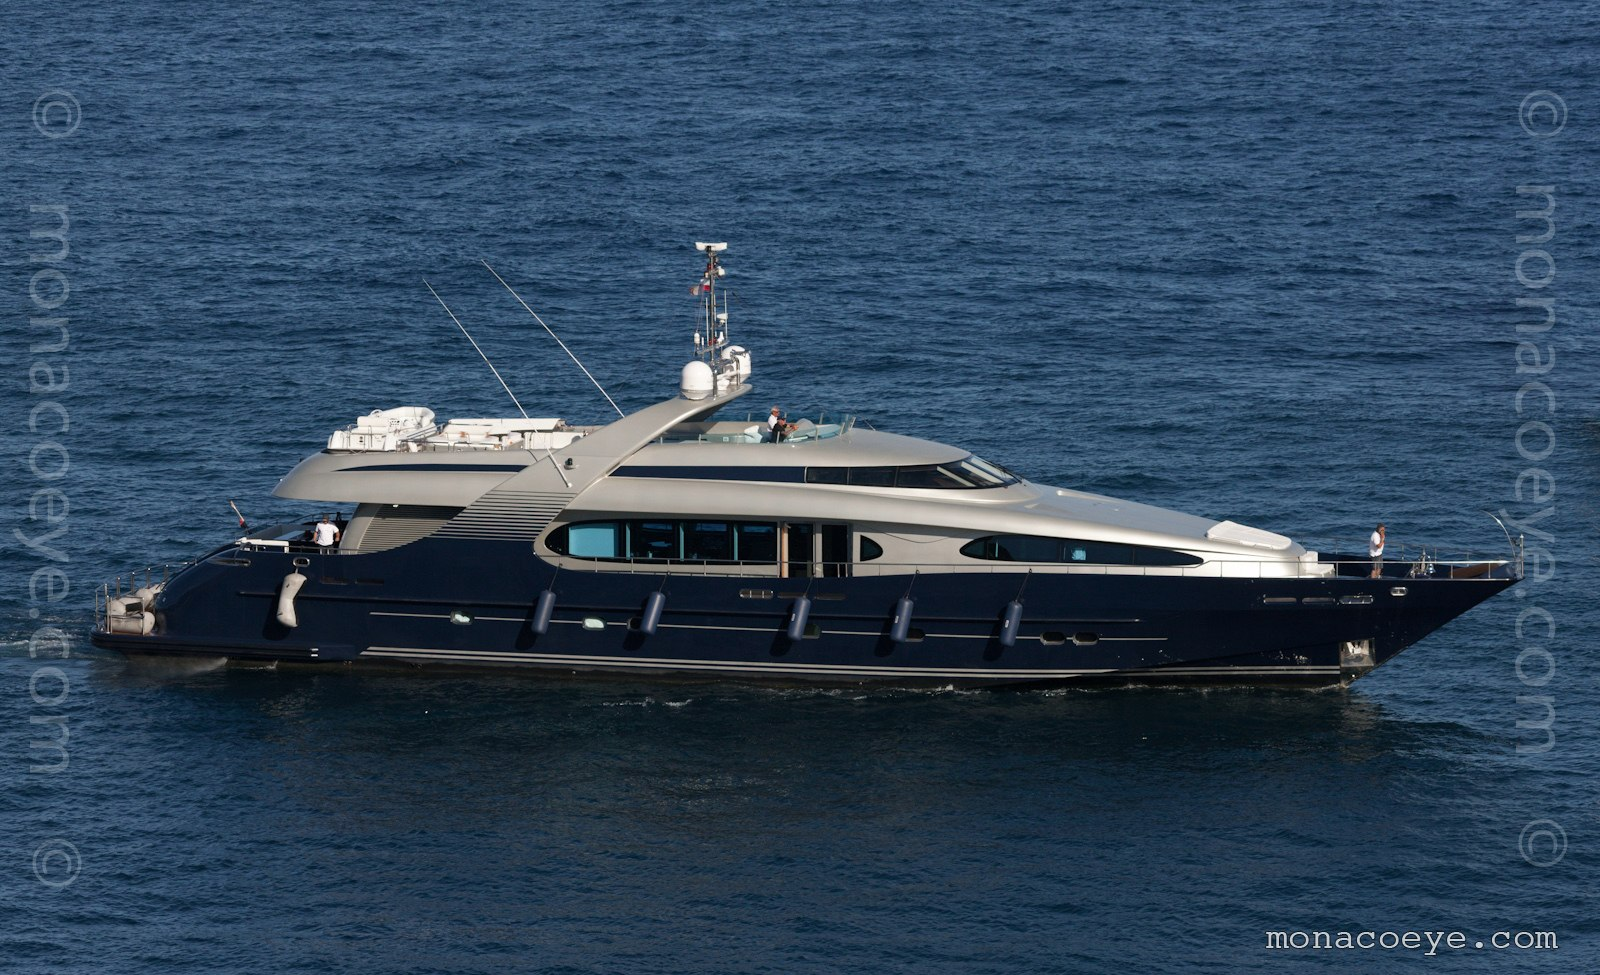 Mamba yacht. Built by BPT Trade, 2009, 39 metres, designed by Mulder Design